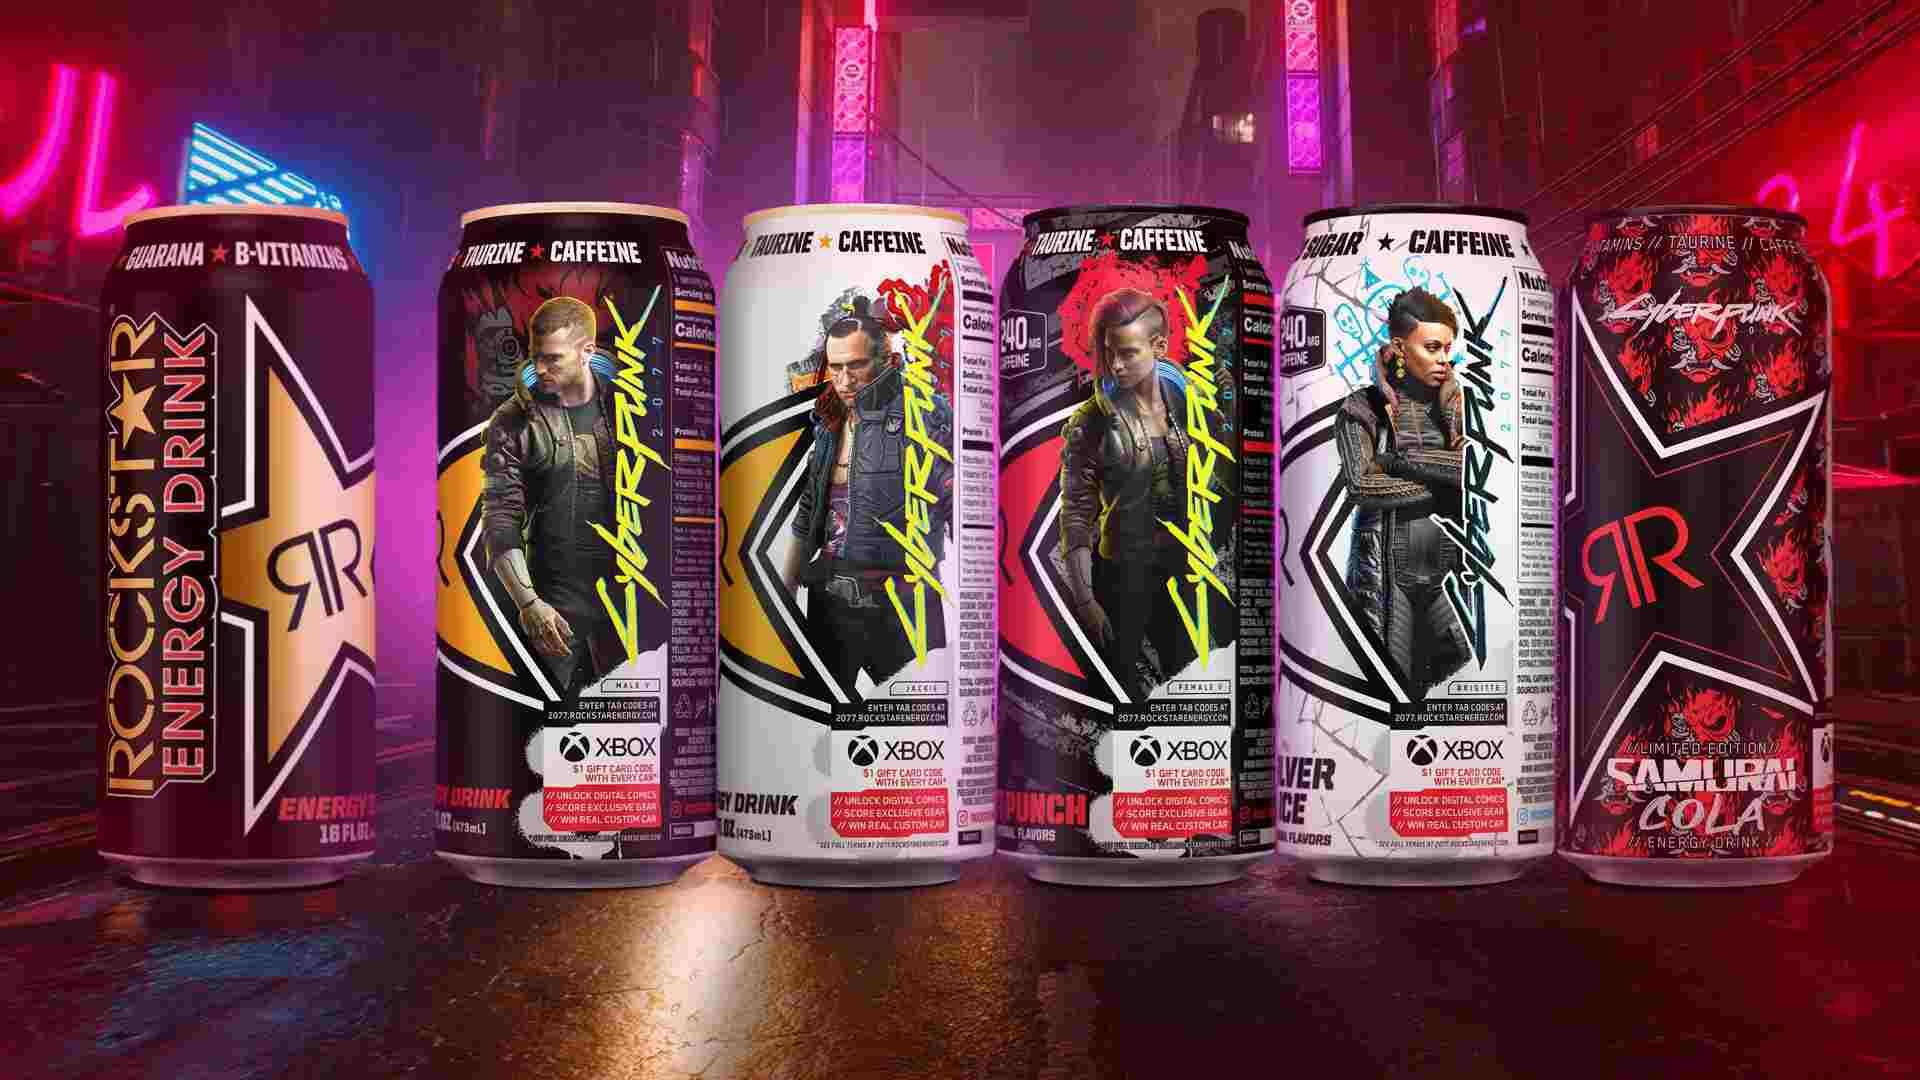 Cyberpunk 2077 Energy Drinks Will Come With Xbox Credit And Contest Entries For Cool Prizes